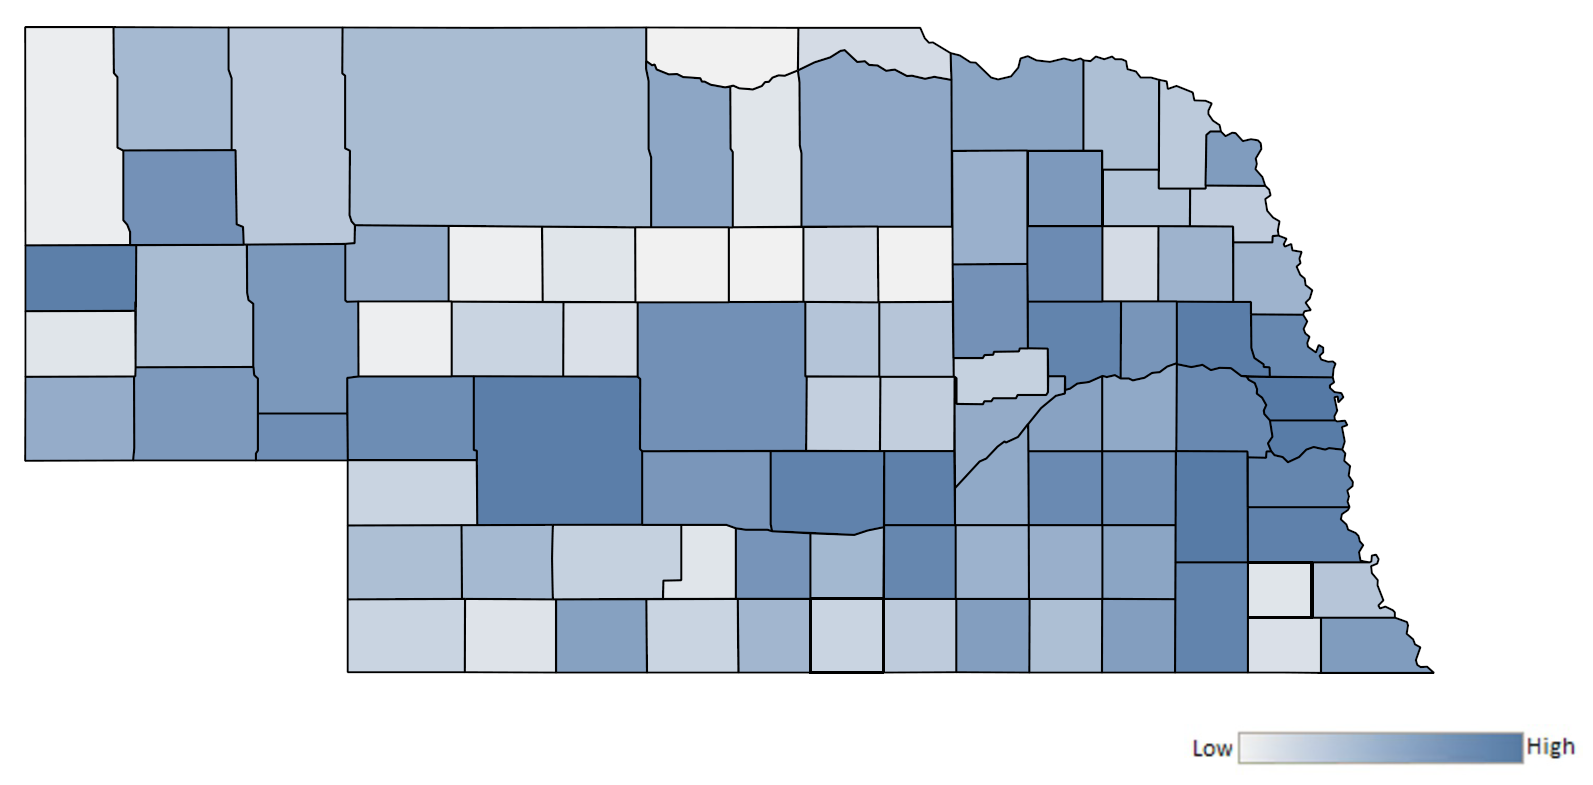 Map of Nebraska counties indicating relative number of complaints from low to high. See attached CSV file for complaint data by jurisdiction.